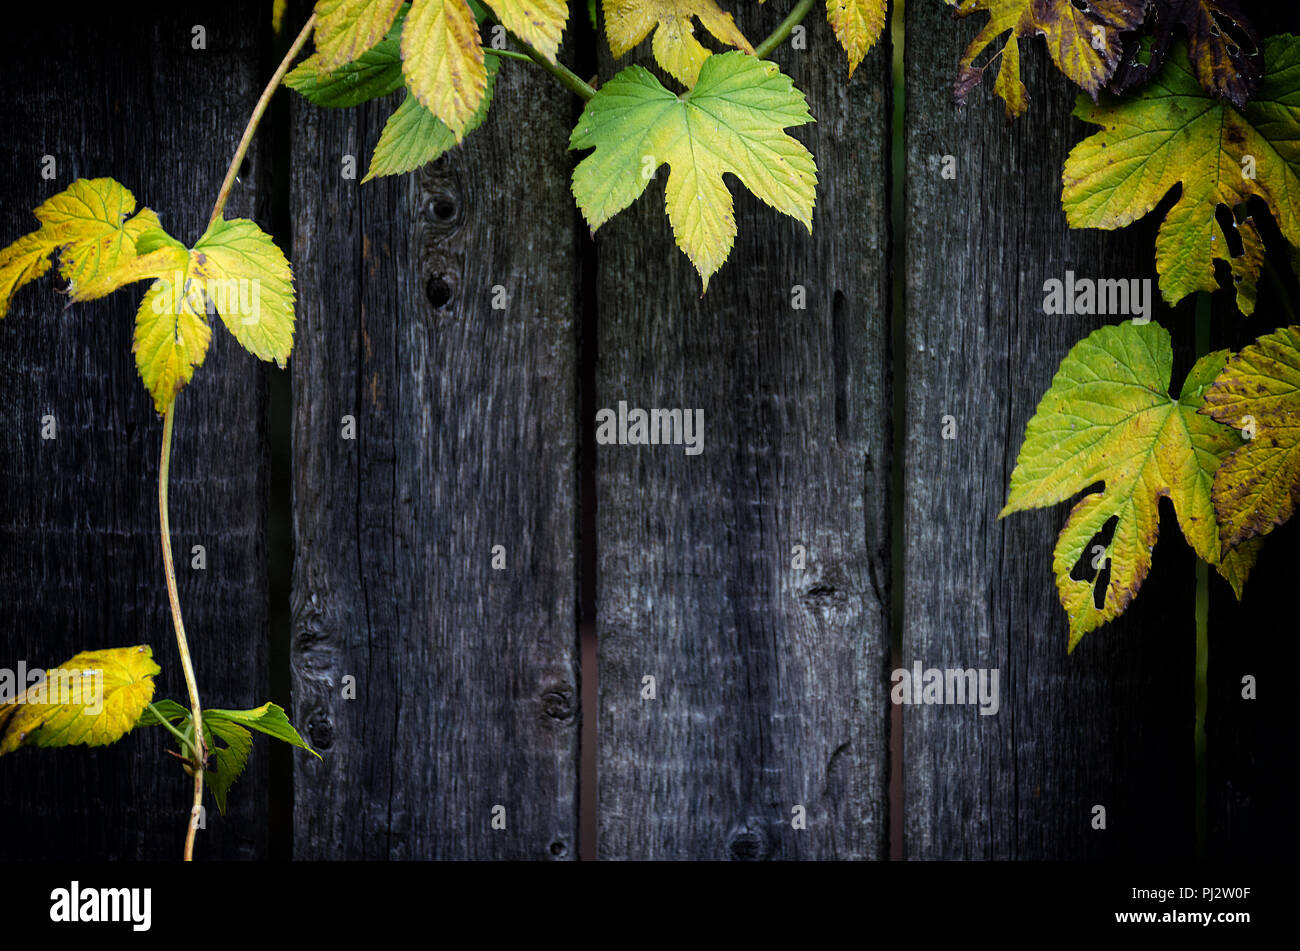 Old grey wooden background, frame of a weaving plant,  wild hop. Empty place for copy space. - Stock Image